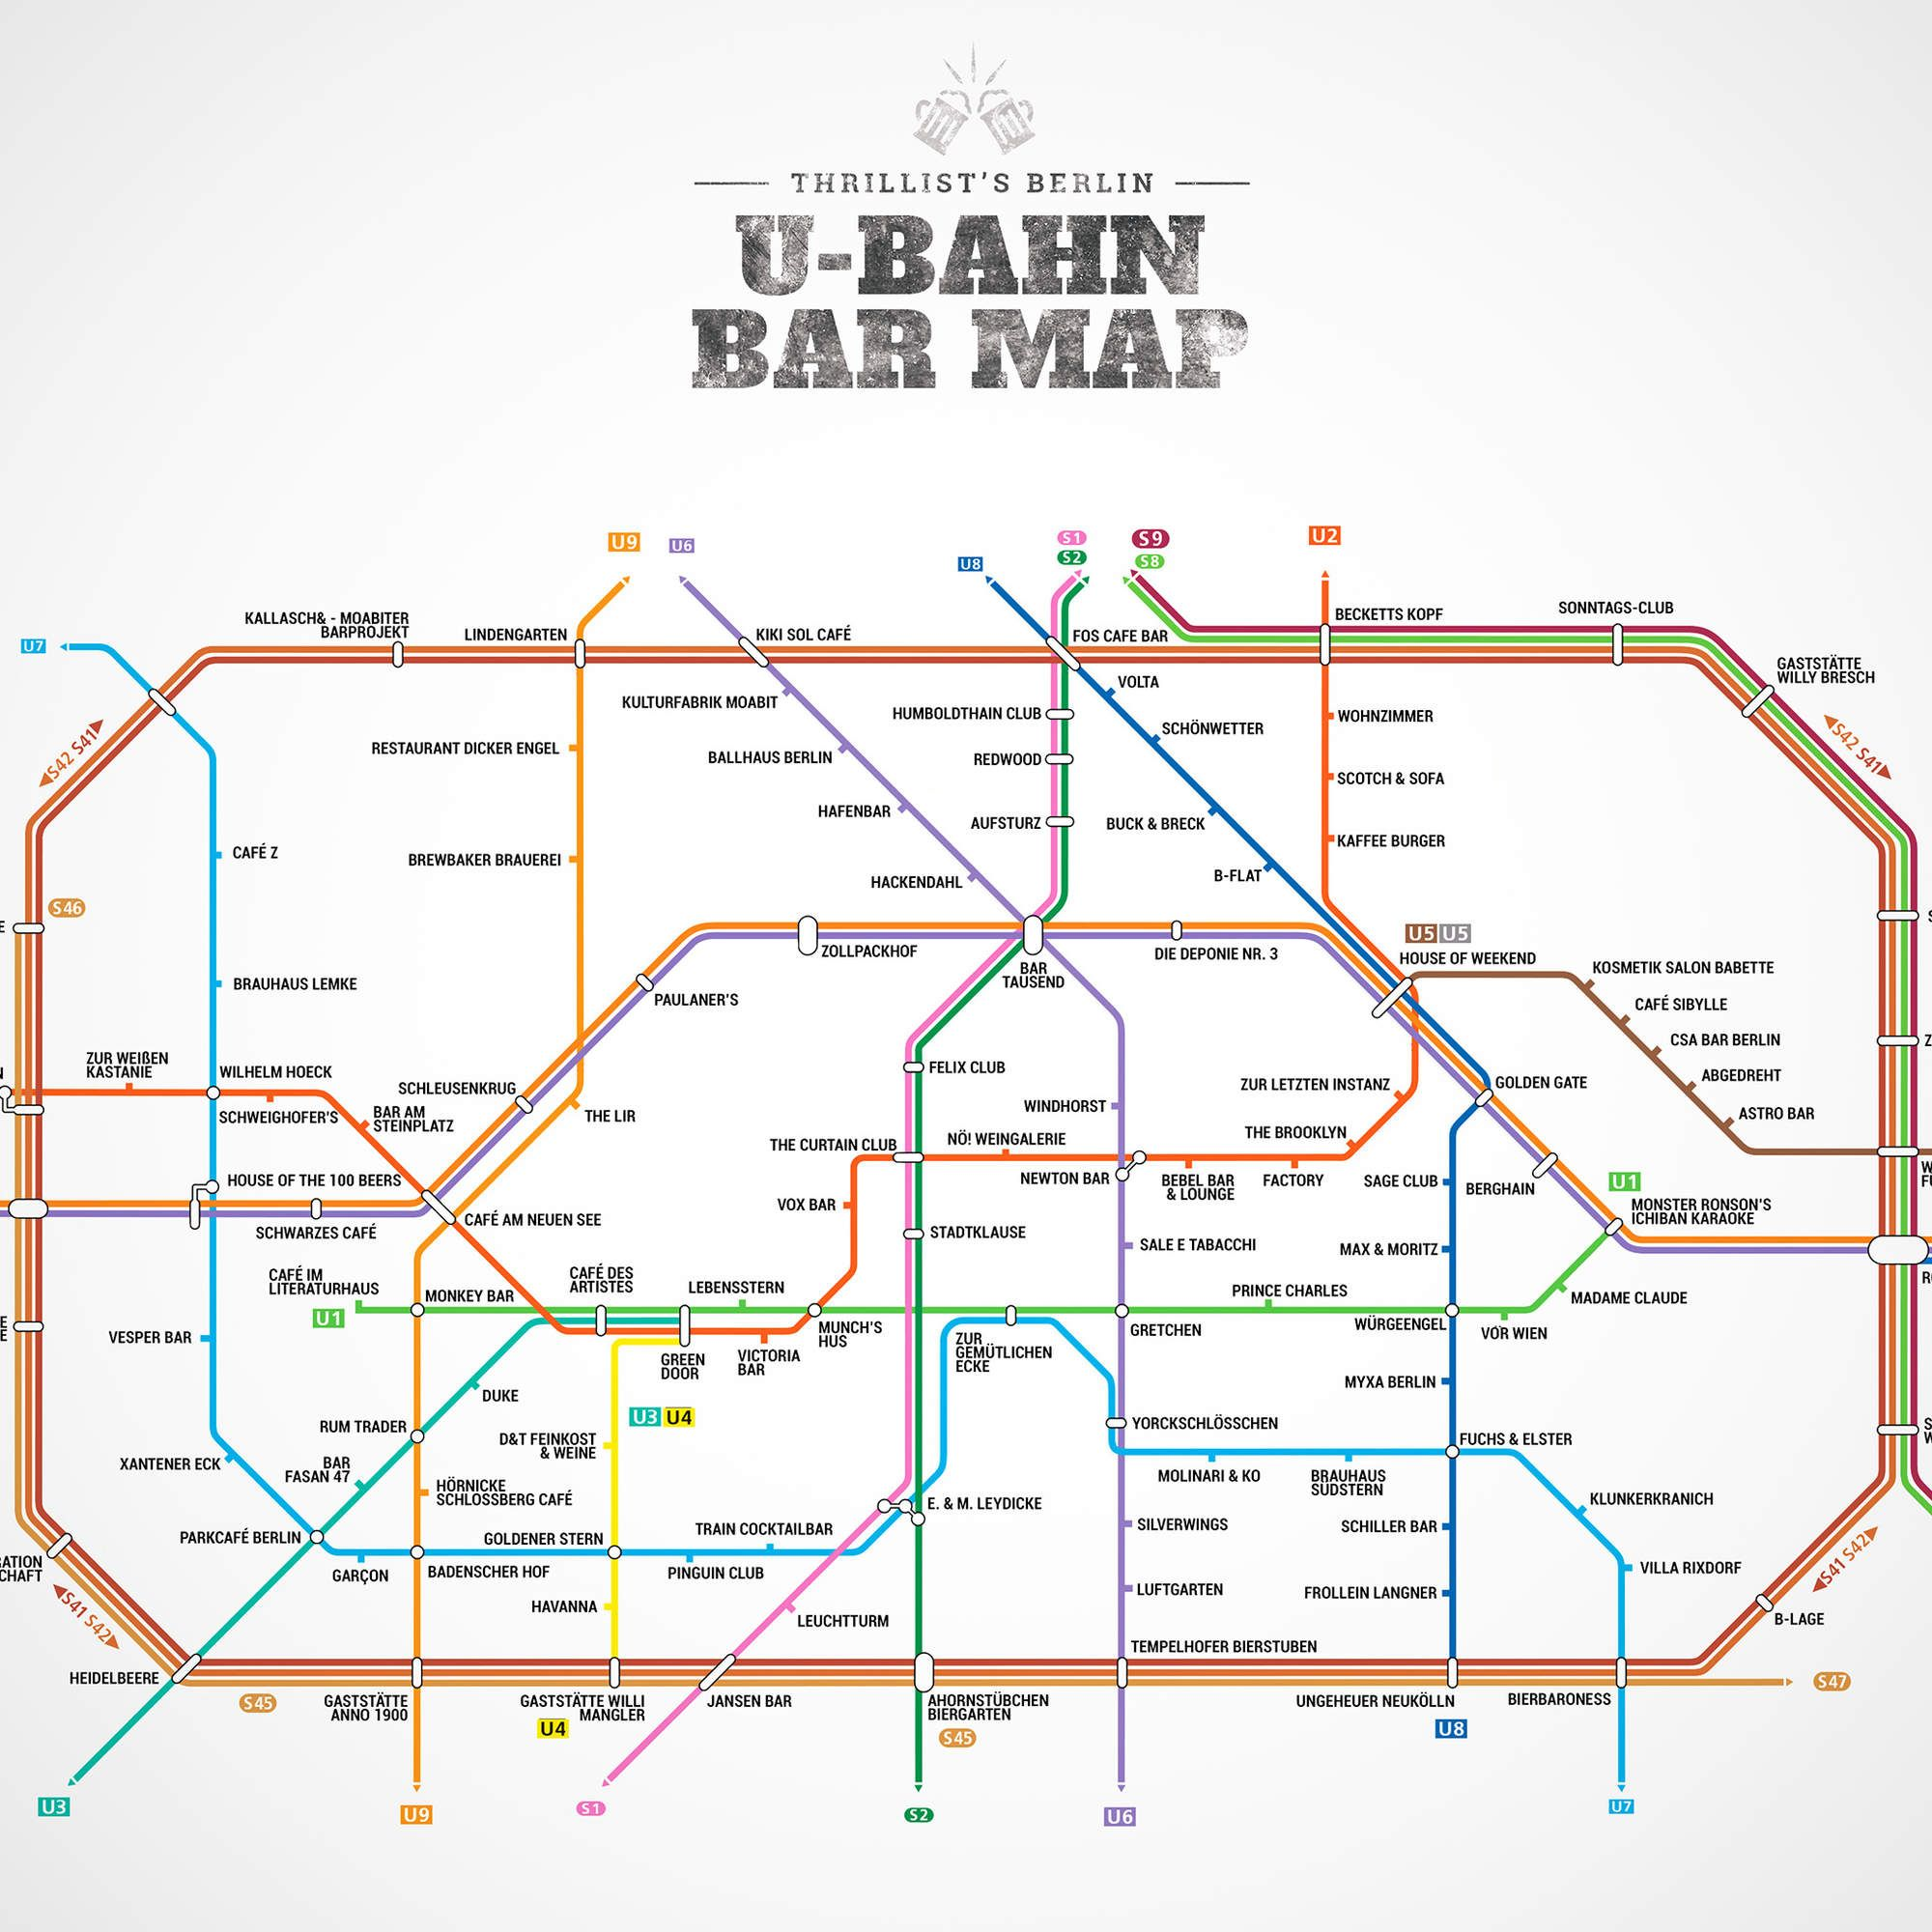 Berlin S First Ever U Bahn Bar Map Berlin Berlin City Berlin Germany